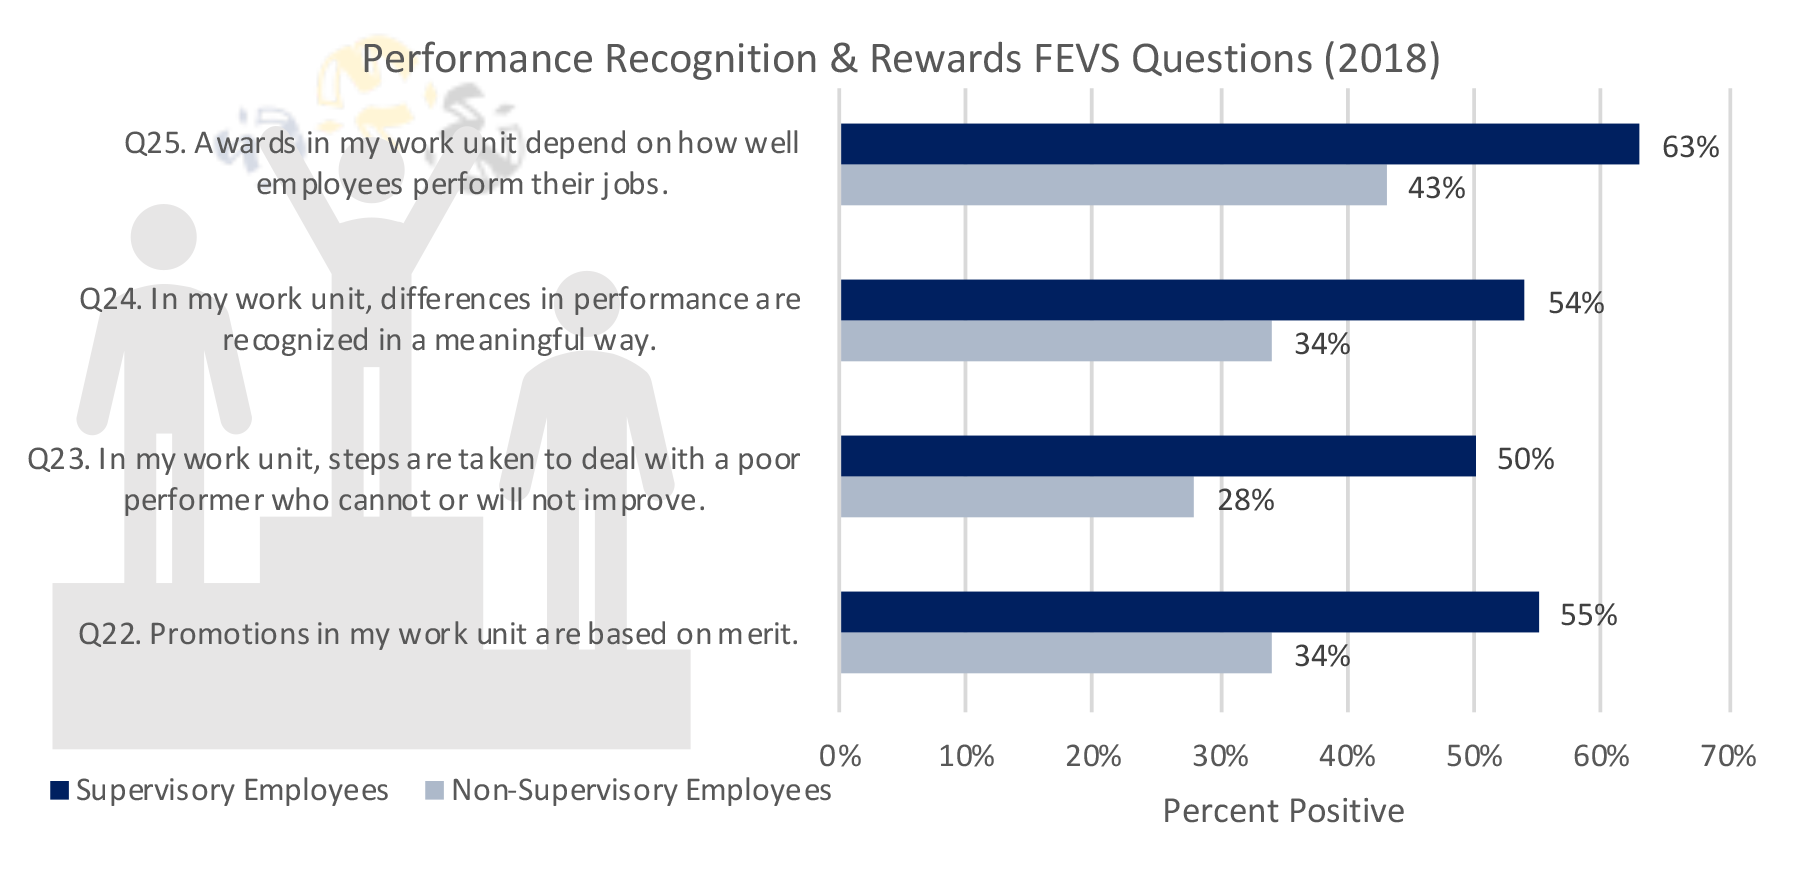 Performance Recognition & Rewards FEVS Questions (2018)